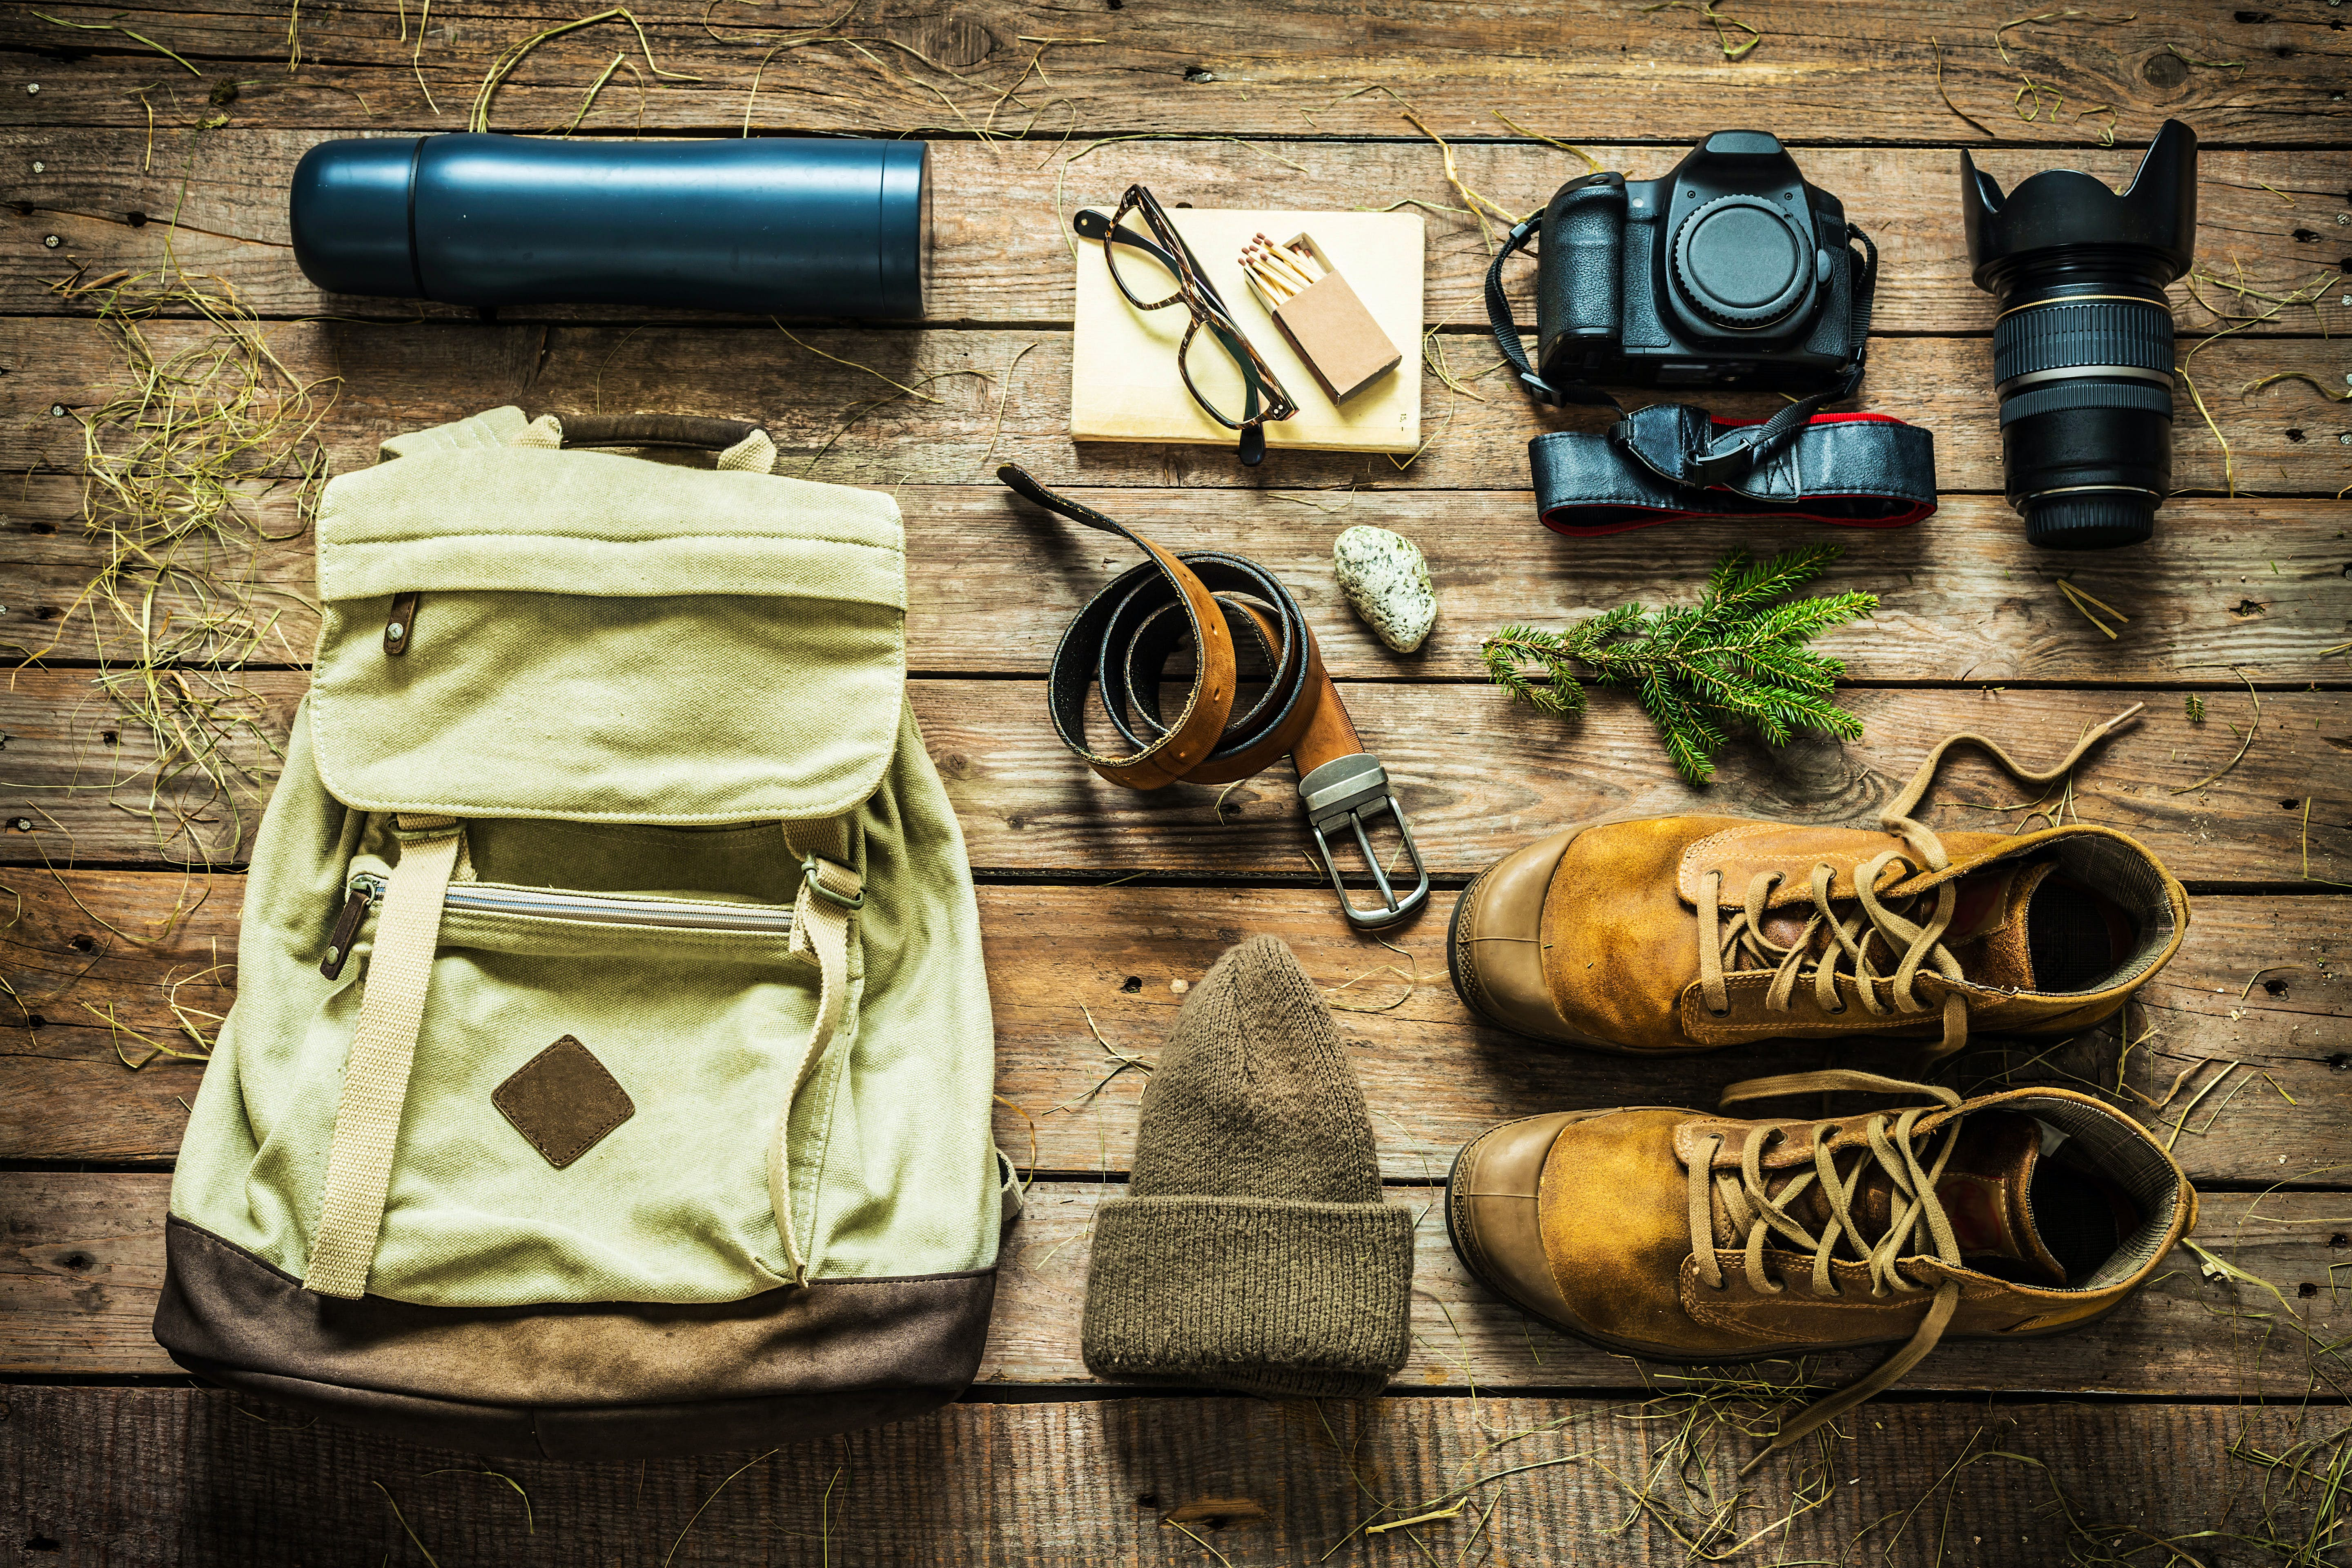 Items including boots, a hat, a belt, a thermos and a camera are laid out neatly on a wooden floor, ready to be packed.